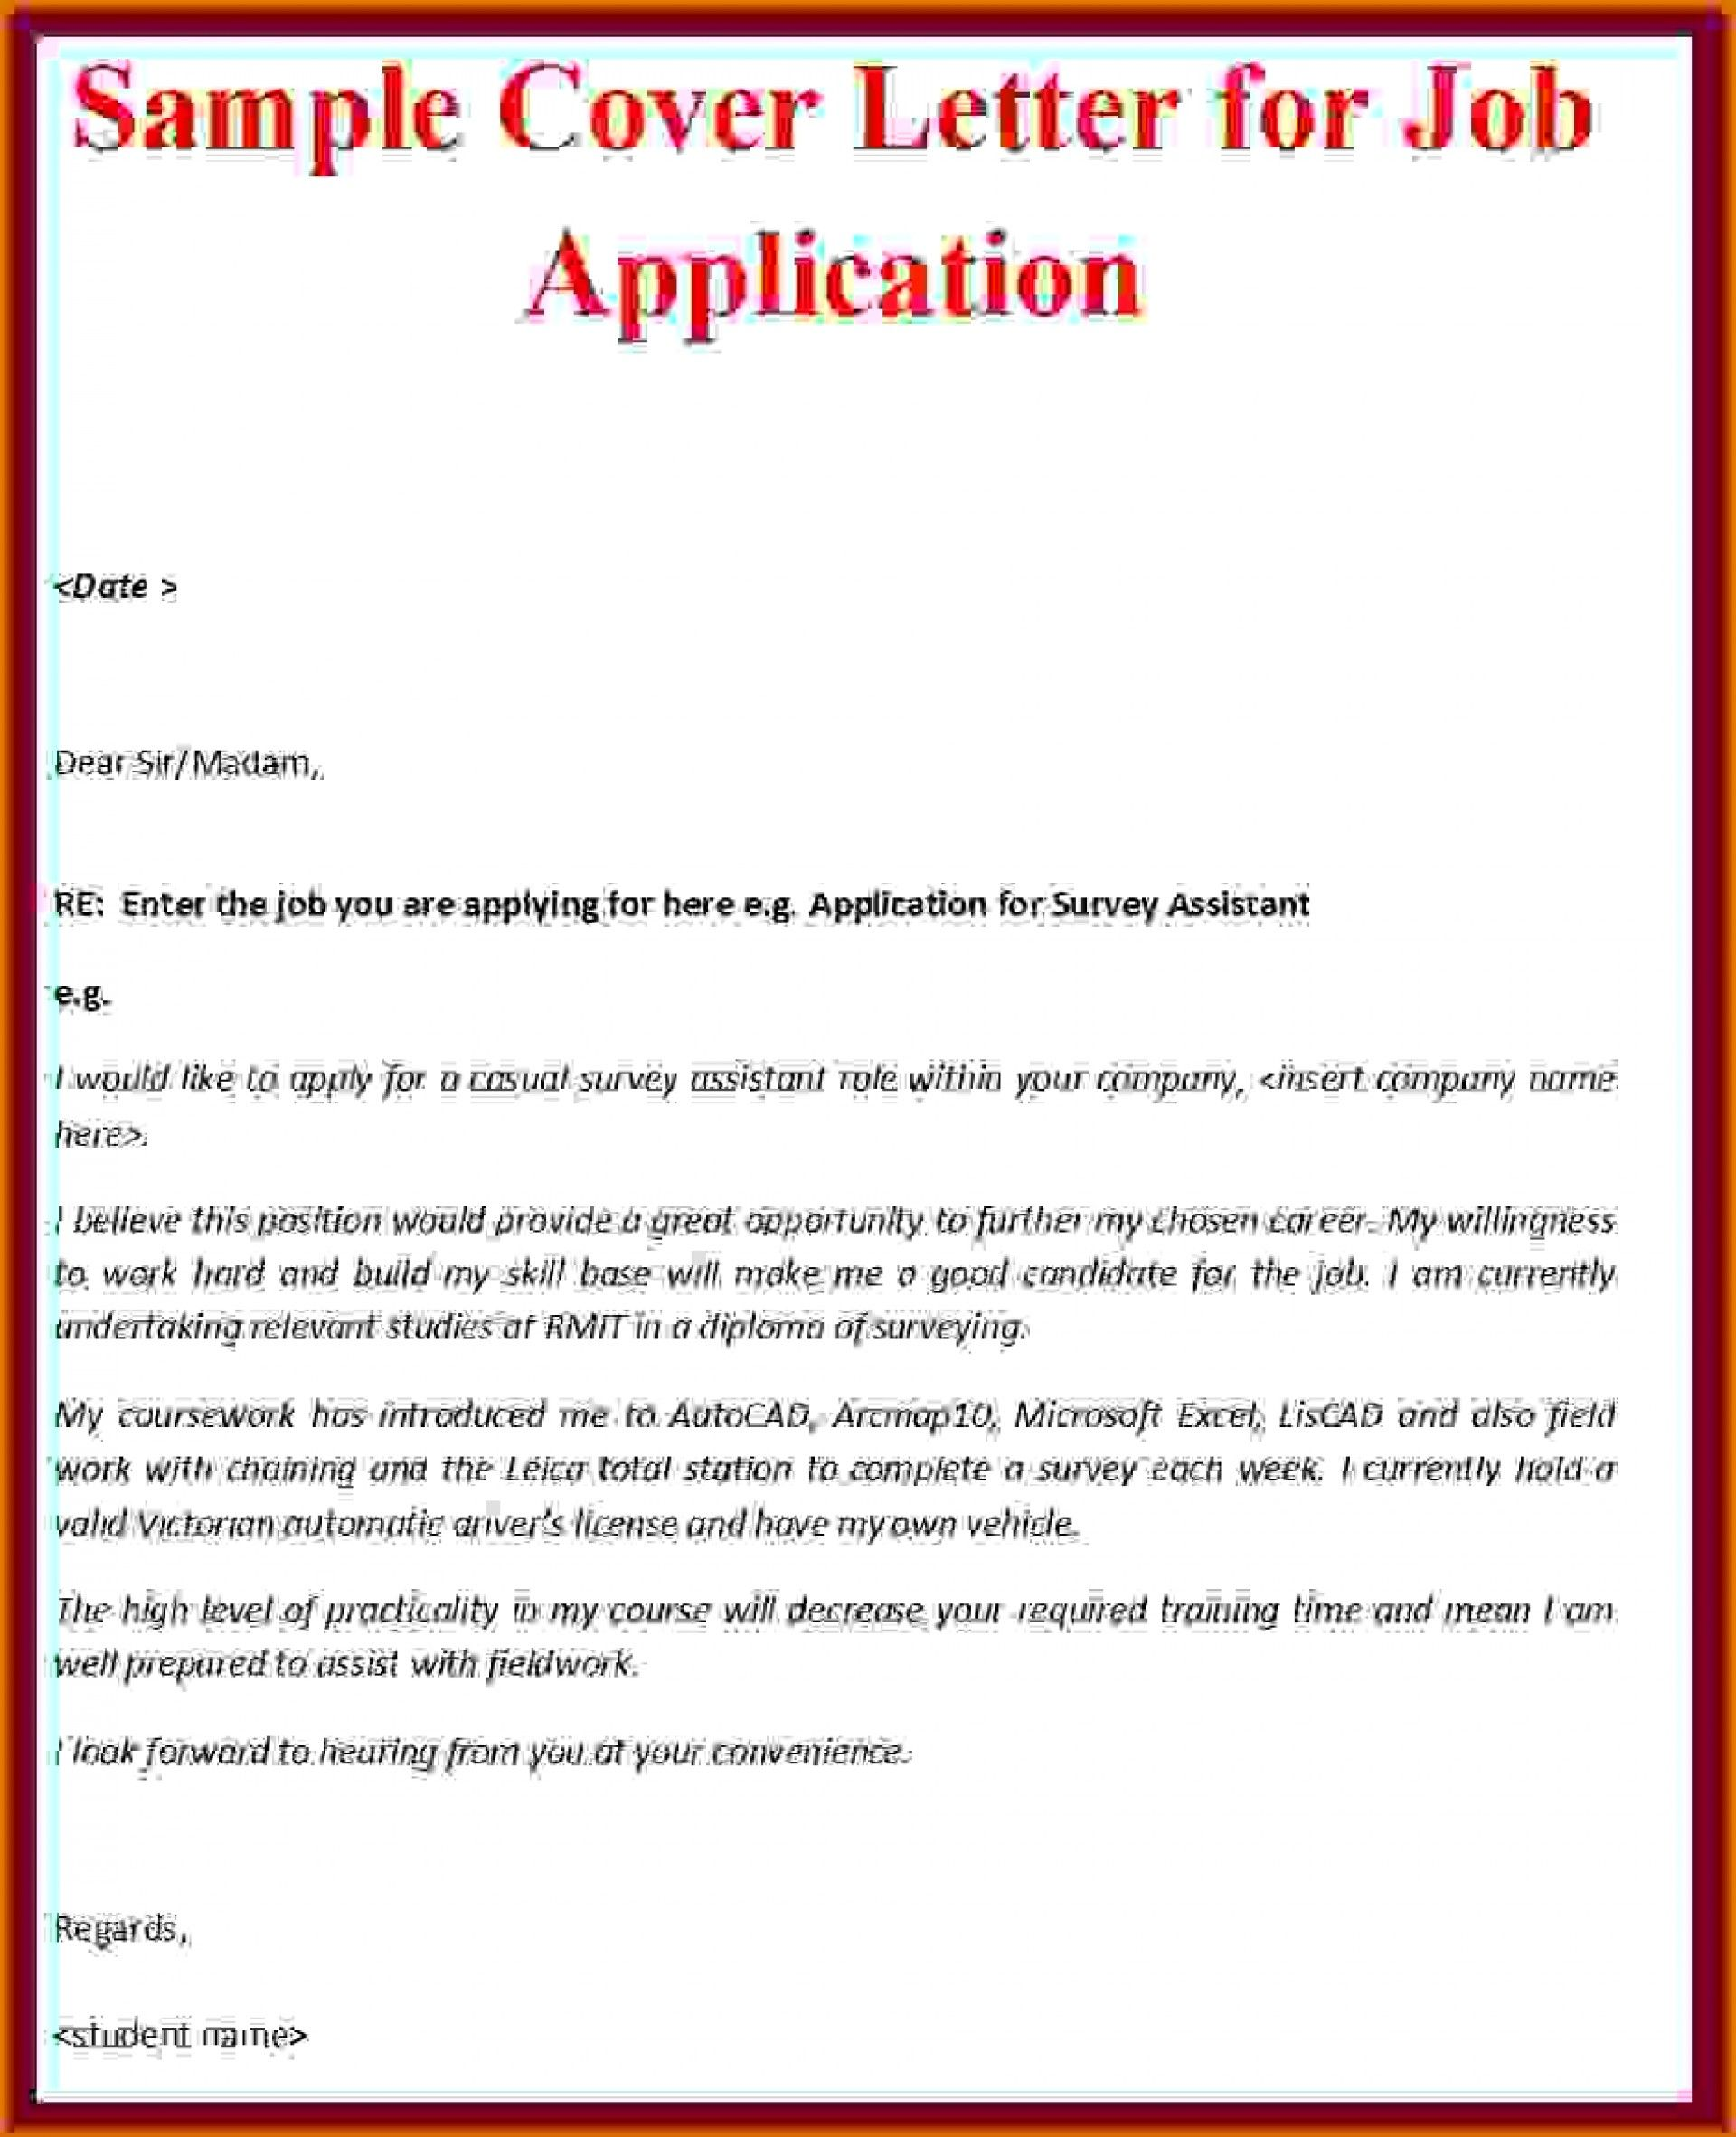 Cover Letter For Job Application Pdf Cover Letter Sample For Job Application